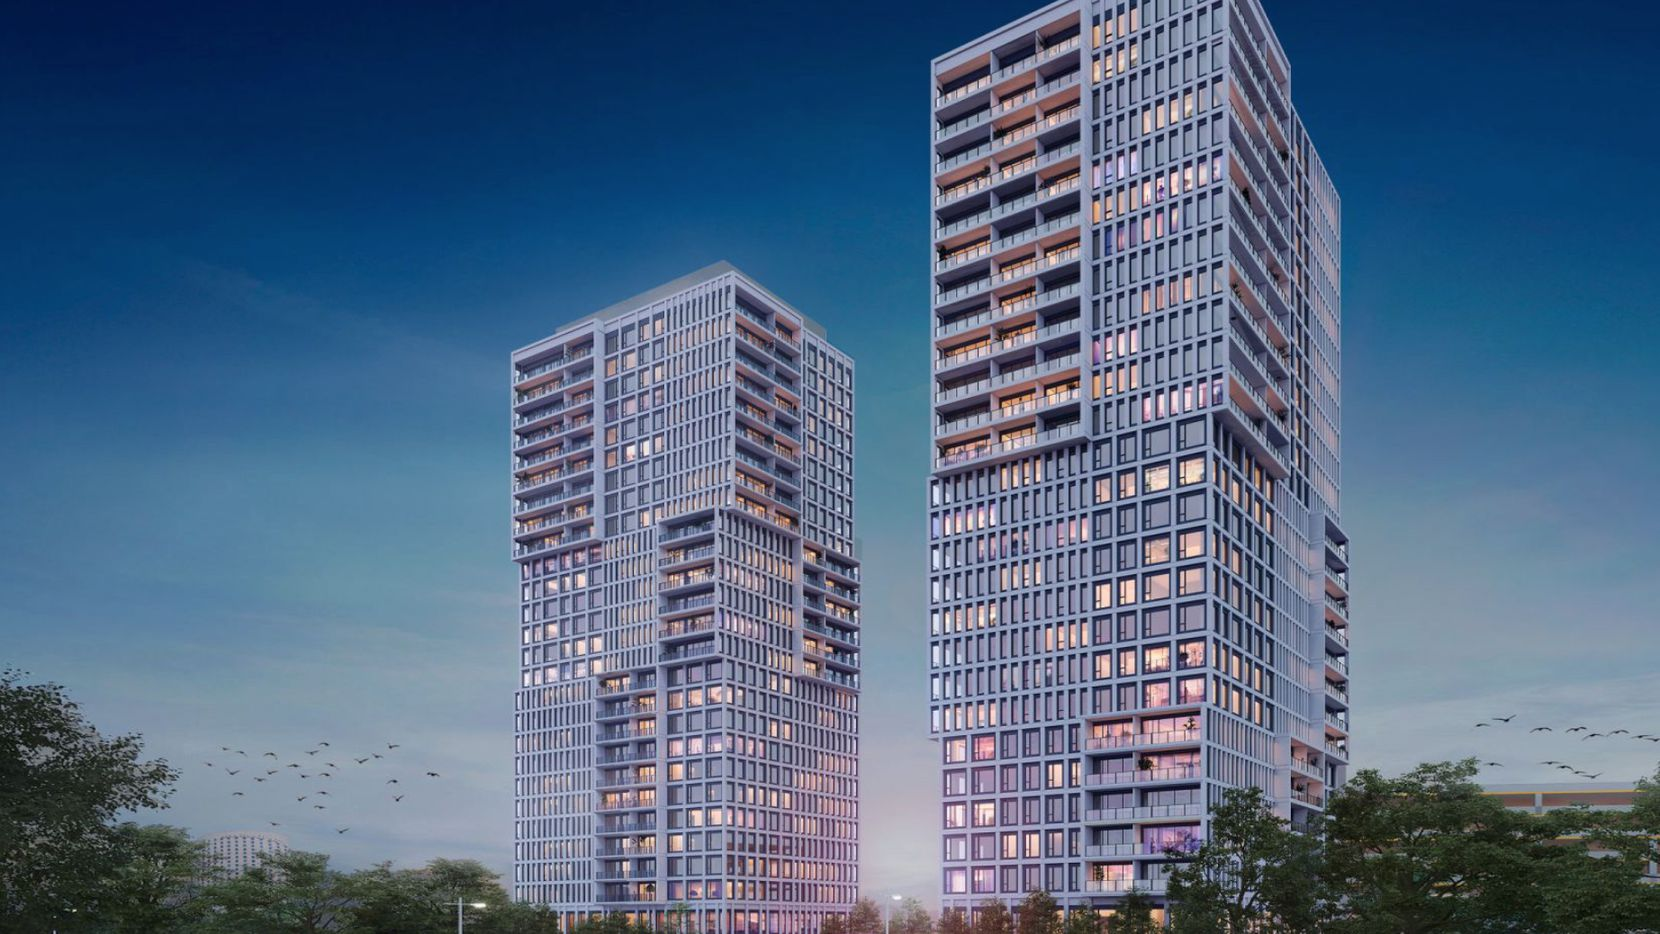 Plans for the first of two Urby towers are moving ahead in Dallas' Design District.